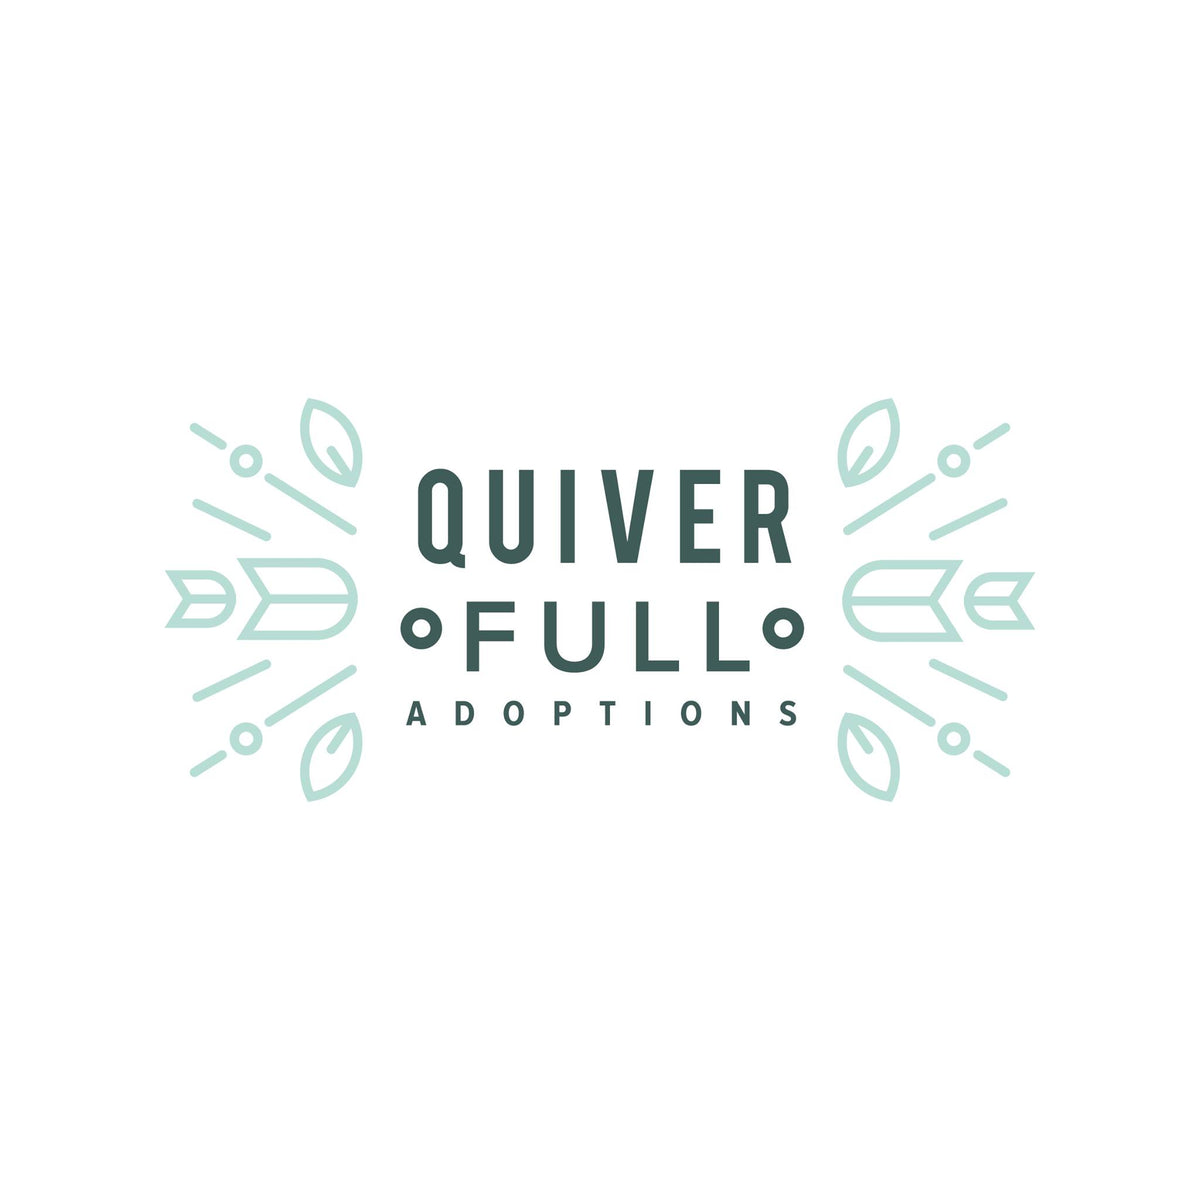 The Light Shines - Quiver Full Adoptions Fundraiser